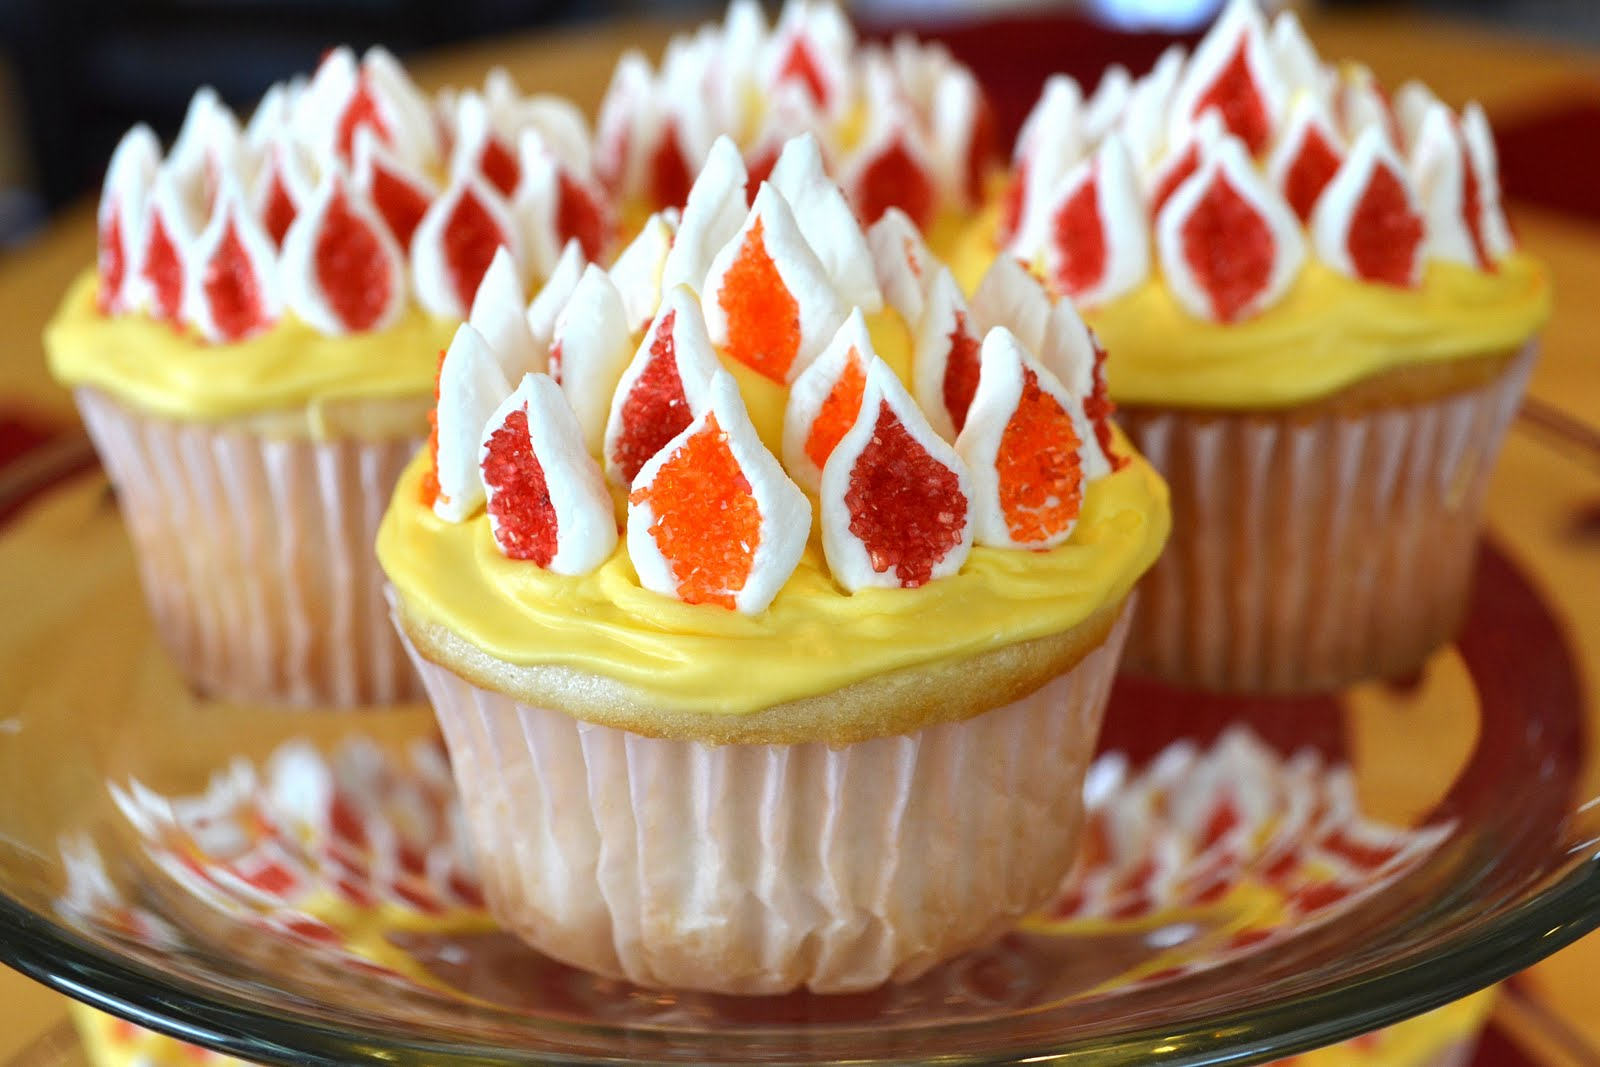 Catholic Cuisine Flaming Cupcakes For Pentecost